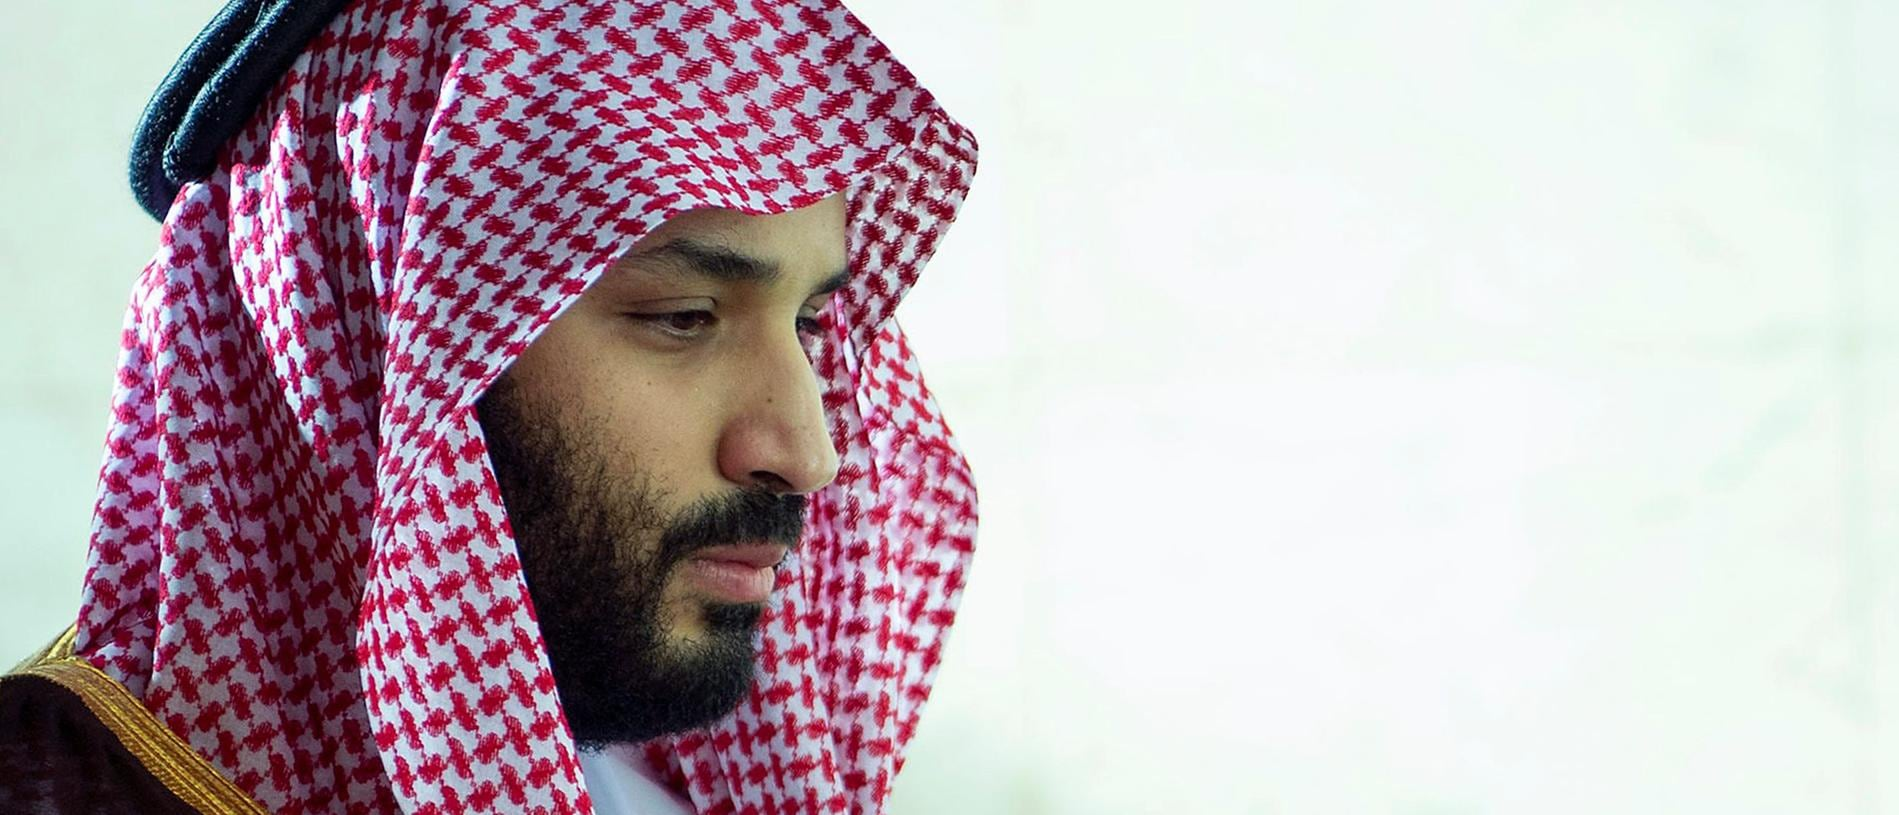 "A handout picture provided by the Saudi Royal Palace on February 12, 2019, shows Saudi Crown Prince Mohammed bin Salman praying inside the Kaaba (""The Cube""), Islam's holiest shrine, at the Grand Mosque in Saudi Arabia's holy city of Mecca, during his inspection of expansions to the site. (Photo by Bandar AL-JALOUD / Saudi Royal Palace / AFP) / RESTRICTED TO EDITORIAL USE - MANDATORY CREDIT ""AFP PHOTO / SAUDI ROYAL PALACE / BANDAR AL-JALOUD"" - NO MARKETING - NO ADVERTISING CAMPAIGNS - DISTRIBUTED AS A SERVICE TO CLIENTS"